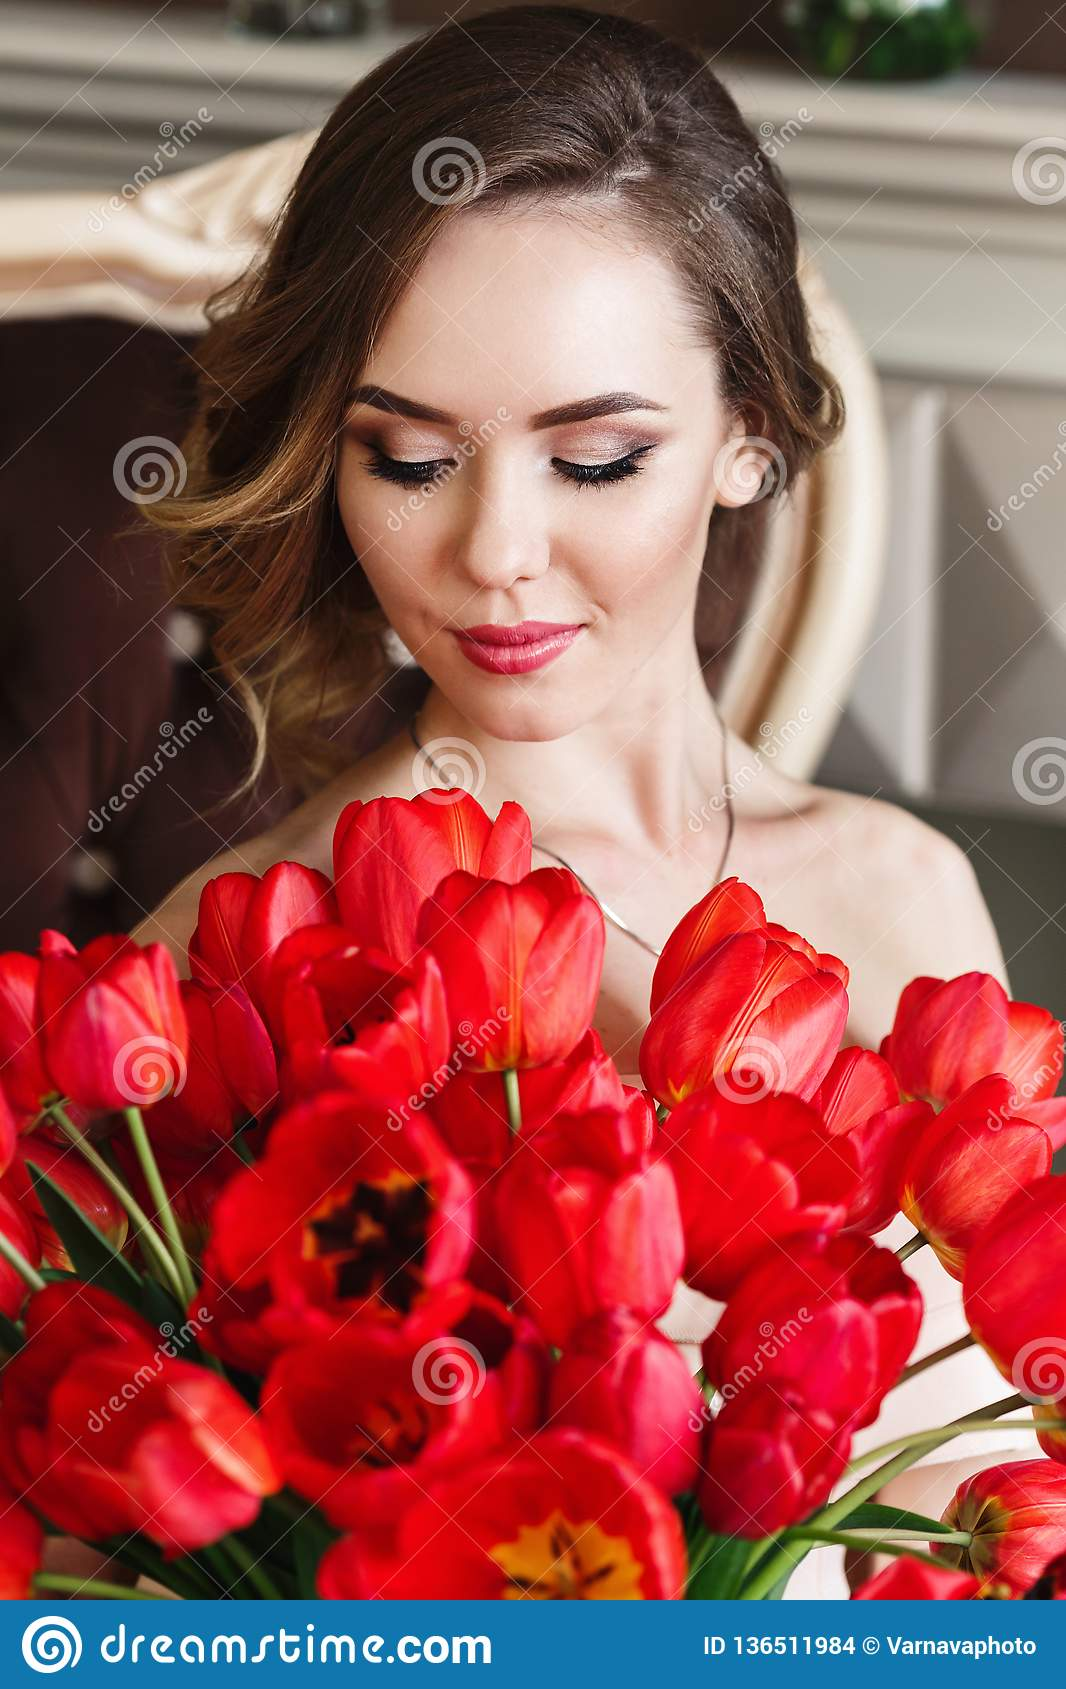 A beautiful young girl is sitting on the sofa and holding a large bouquet of red tulips. March 8 concept. Morning of the bride.